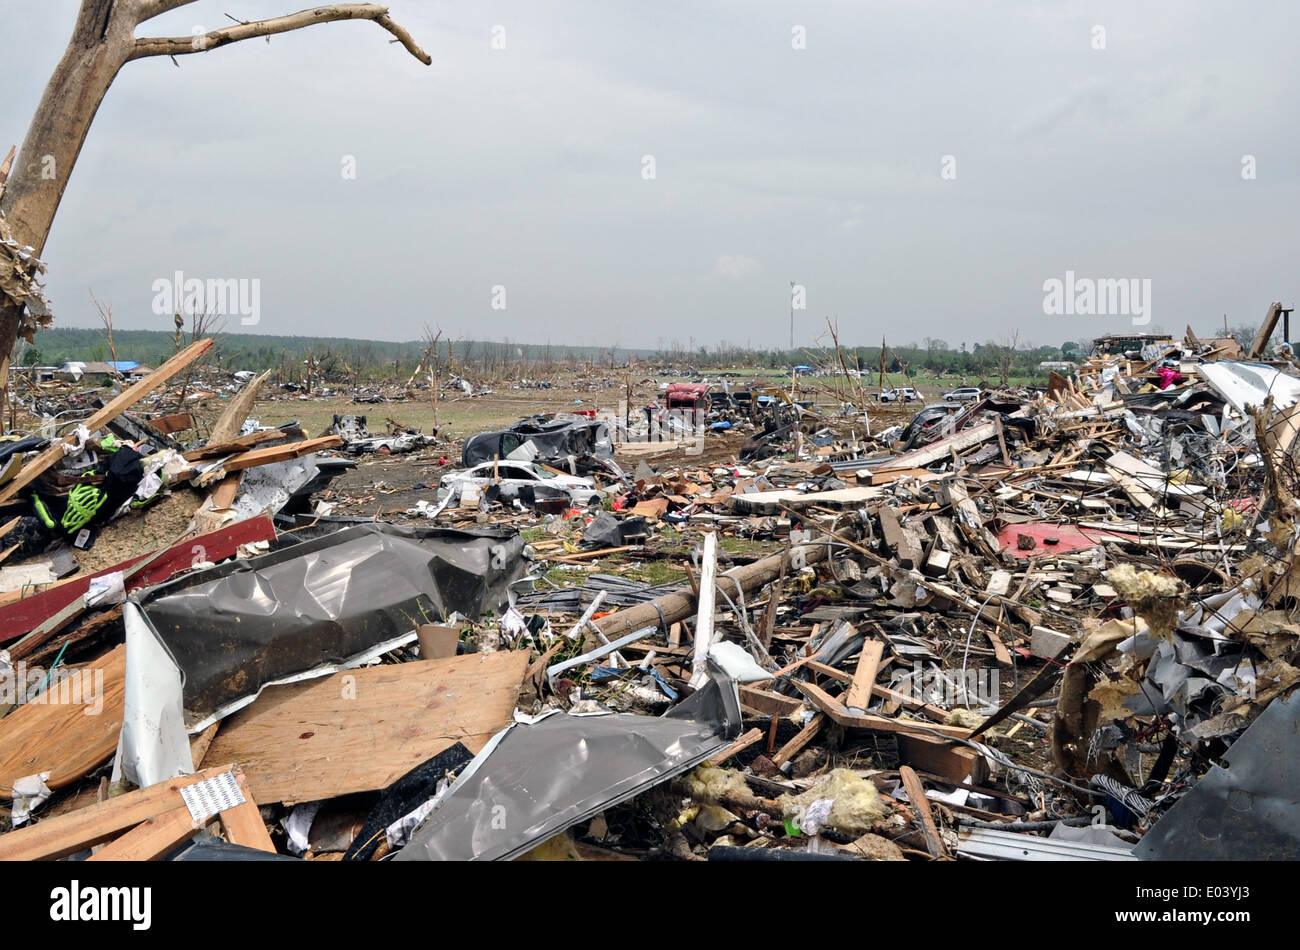 Aftermath of a massive tornado that swept swept across the southern states killing 35 people April 28, 2014 in Vilonia, Arkansas. - Stock Image